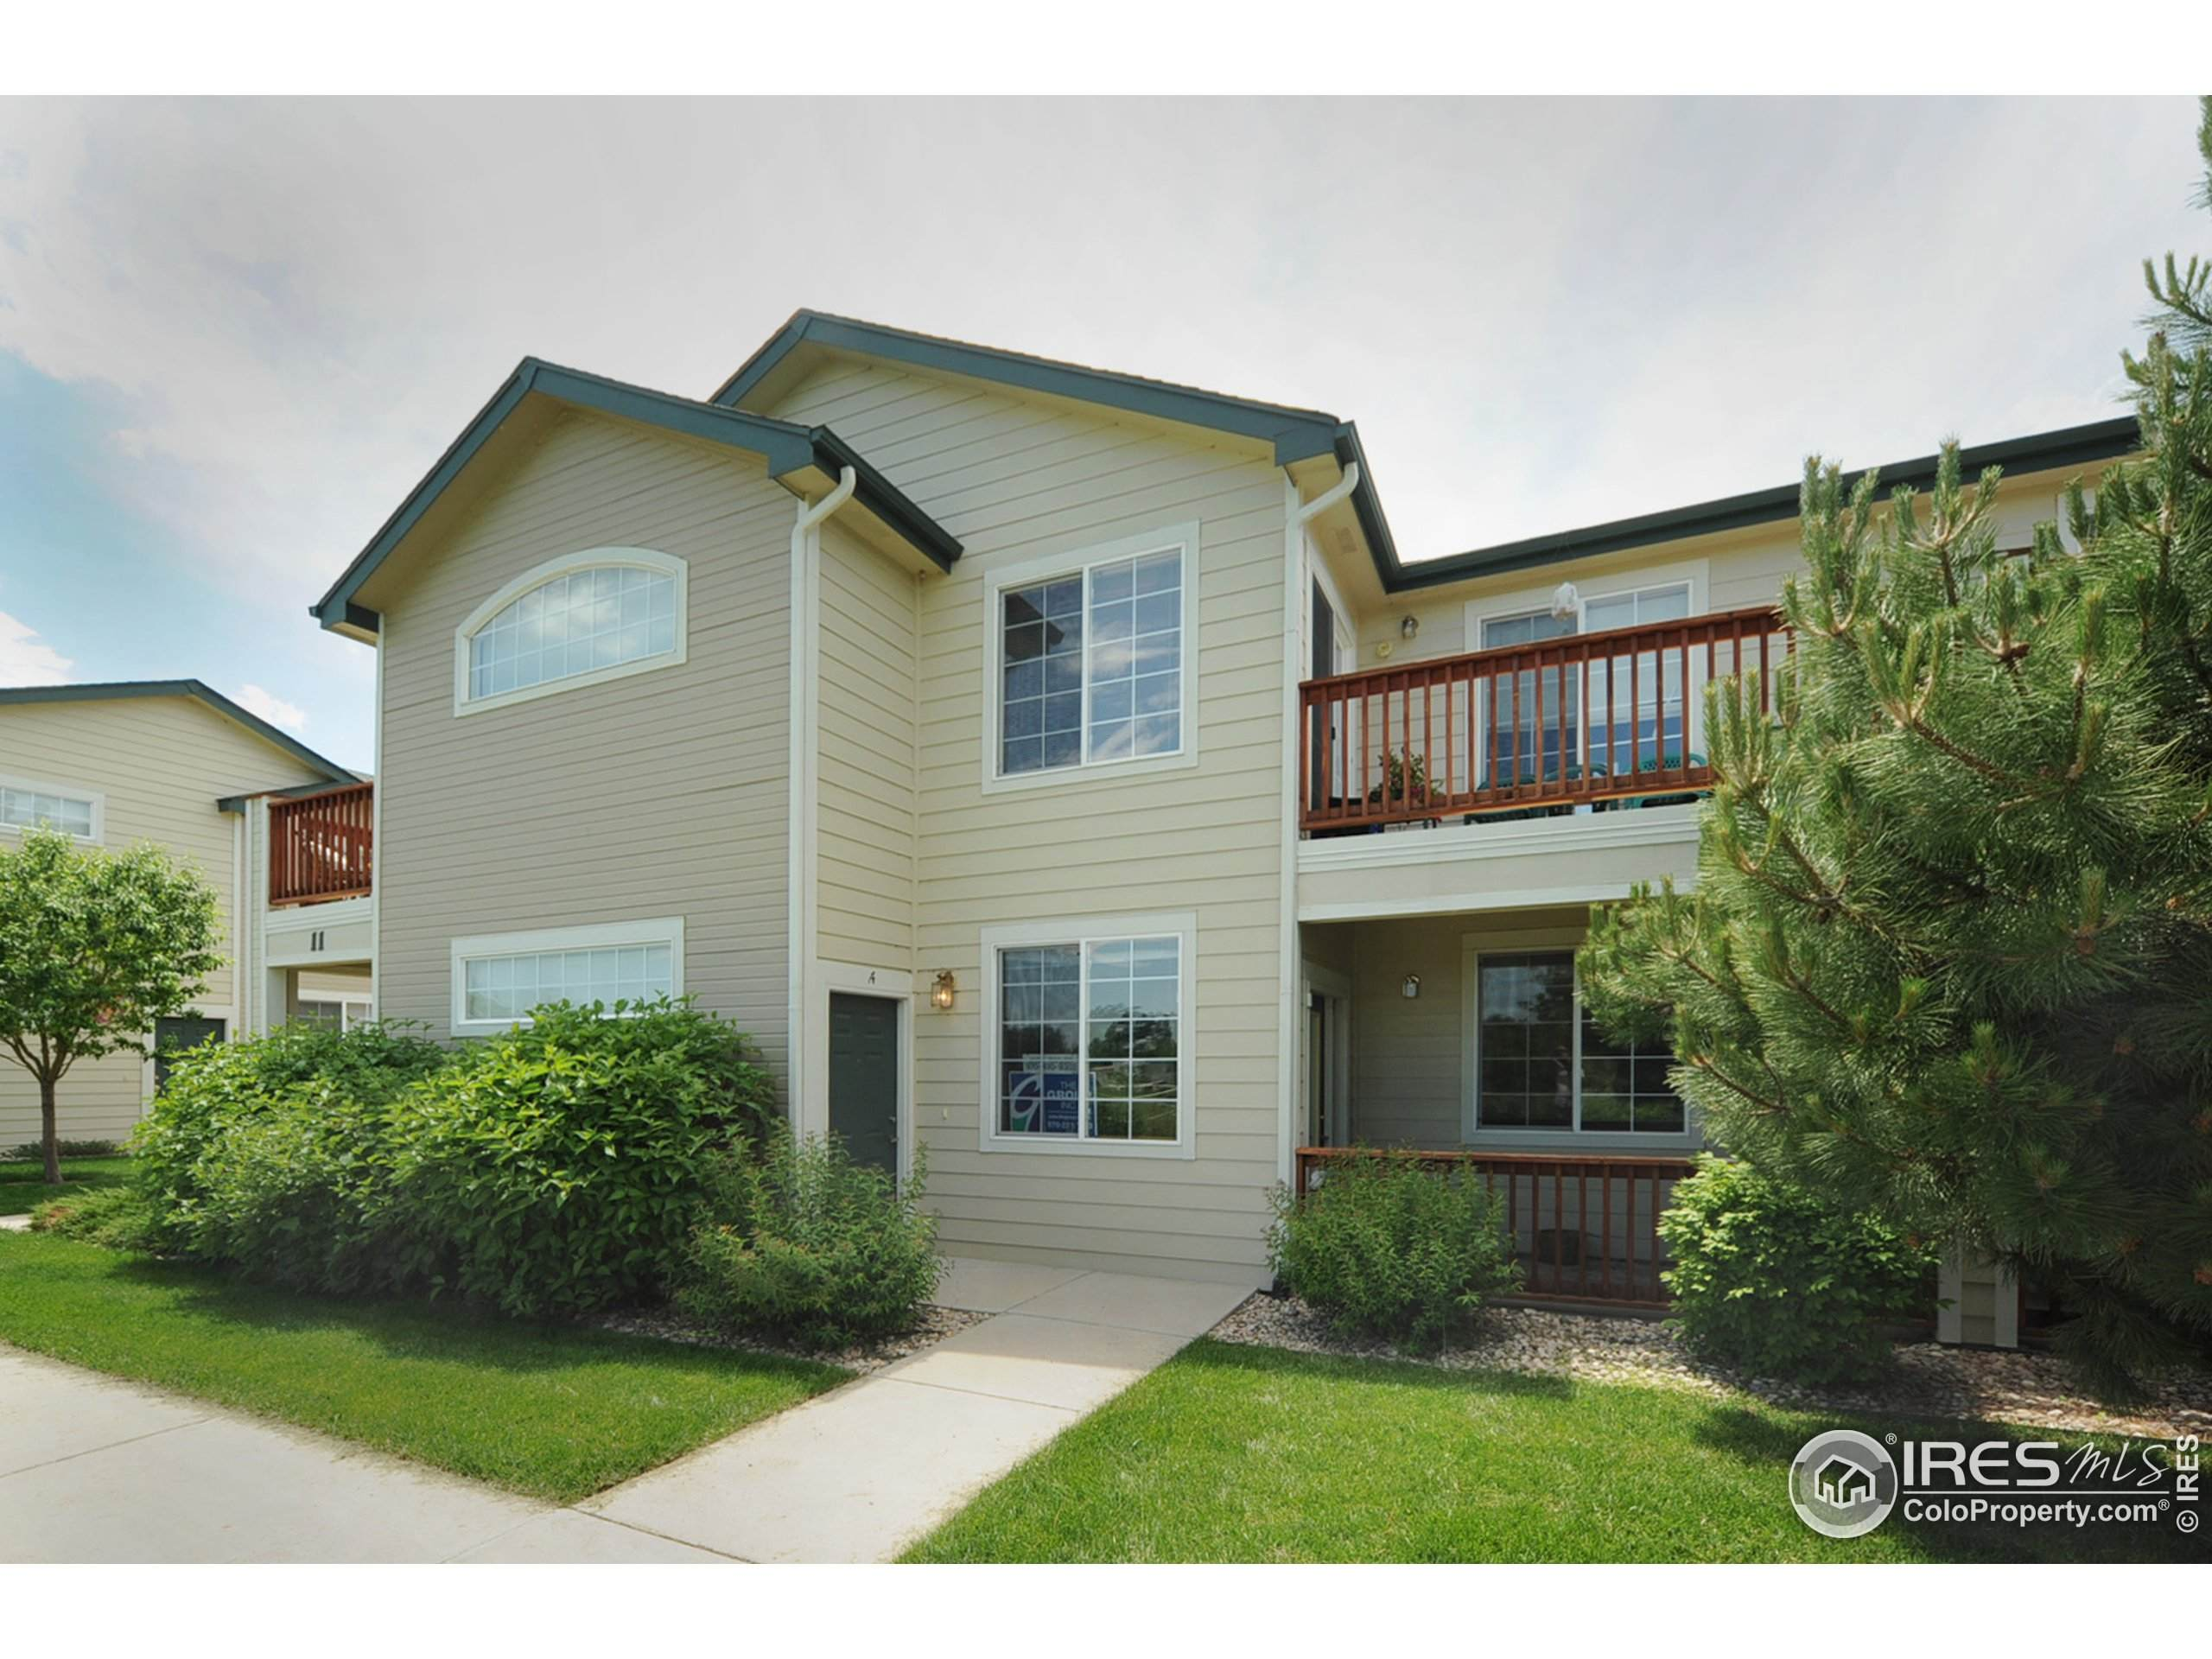 936 Driftwood Dr, Fort Collins, CO 80525 (MLS #931653) :: J2 Real Estate Group at Remax Alliance